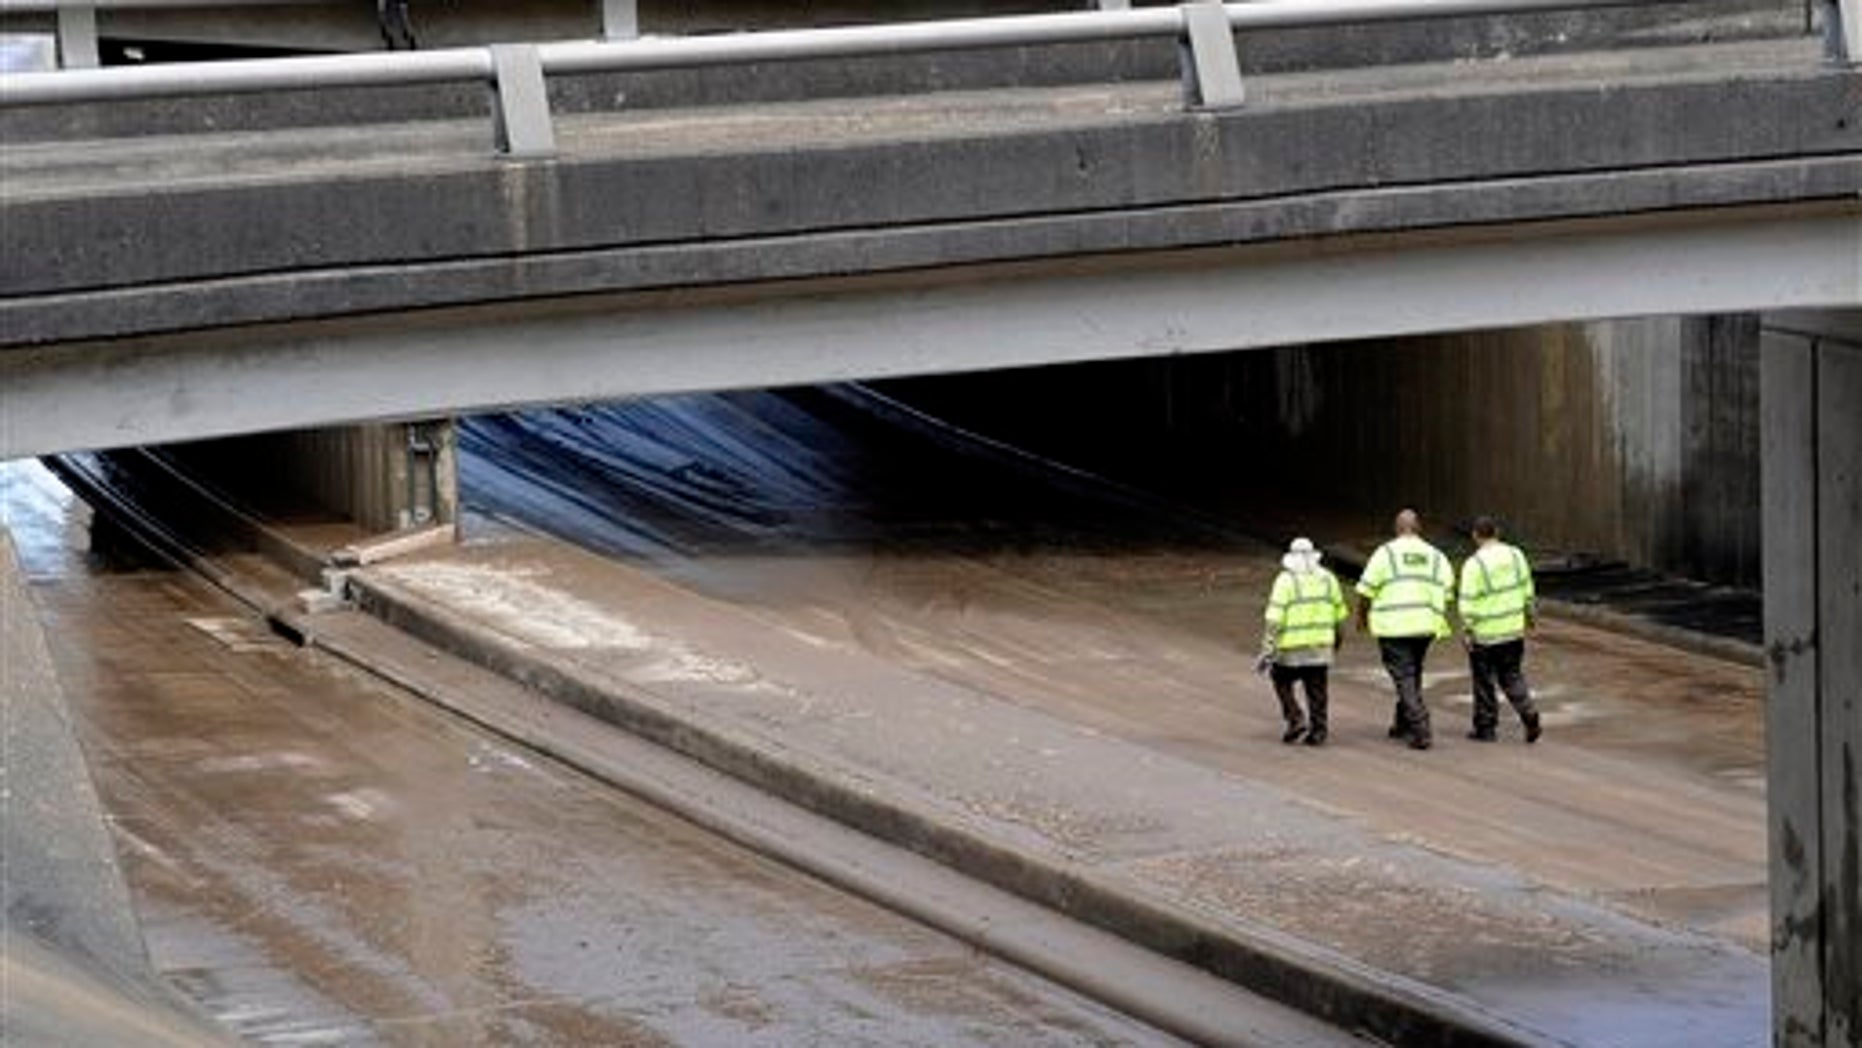 City of Houston workers walk along a wet, muddy, low stretch of Allen Parkway near downtown Houston, Wednesday, May 27, 2015. Heavy rains and flooding have kept the section closed to traffic. (AP Photo/Pat Sullivan)